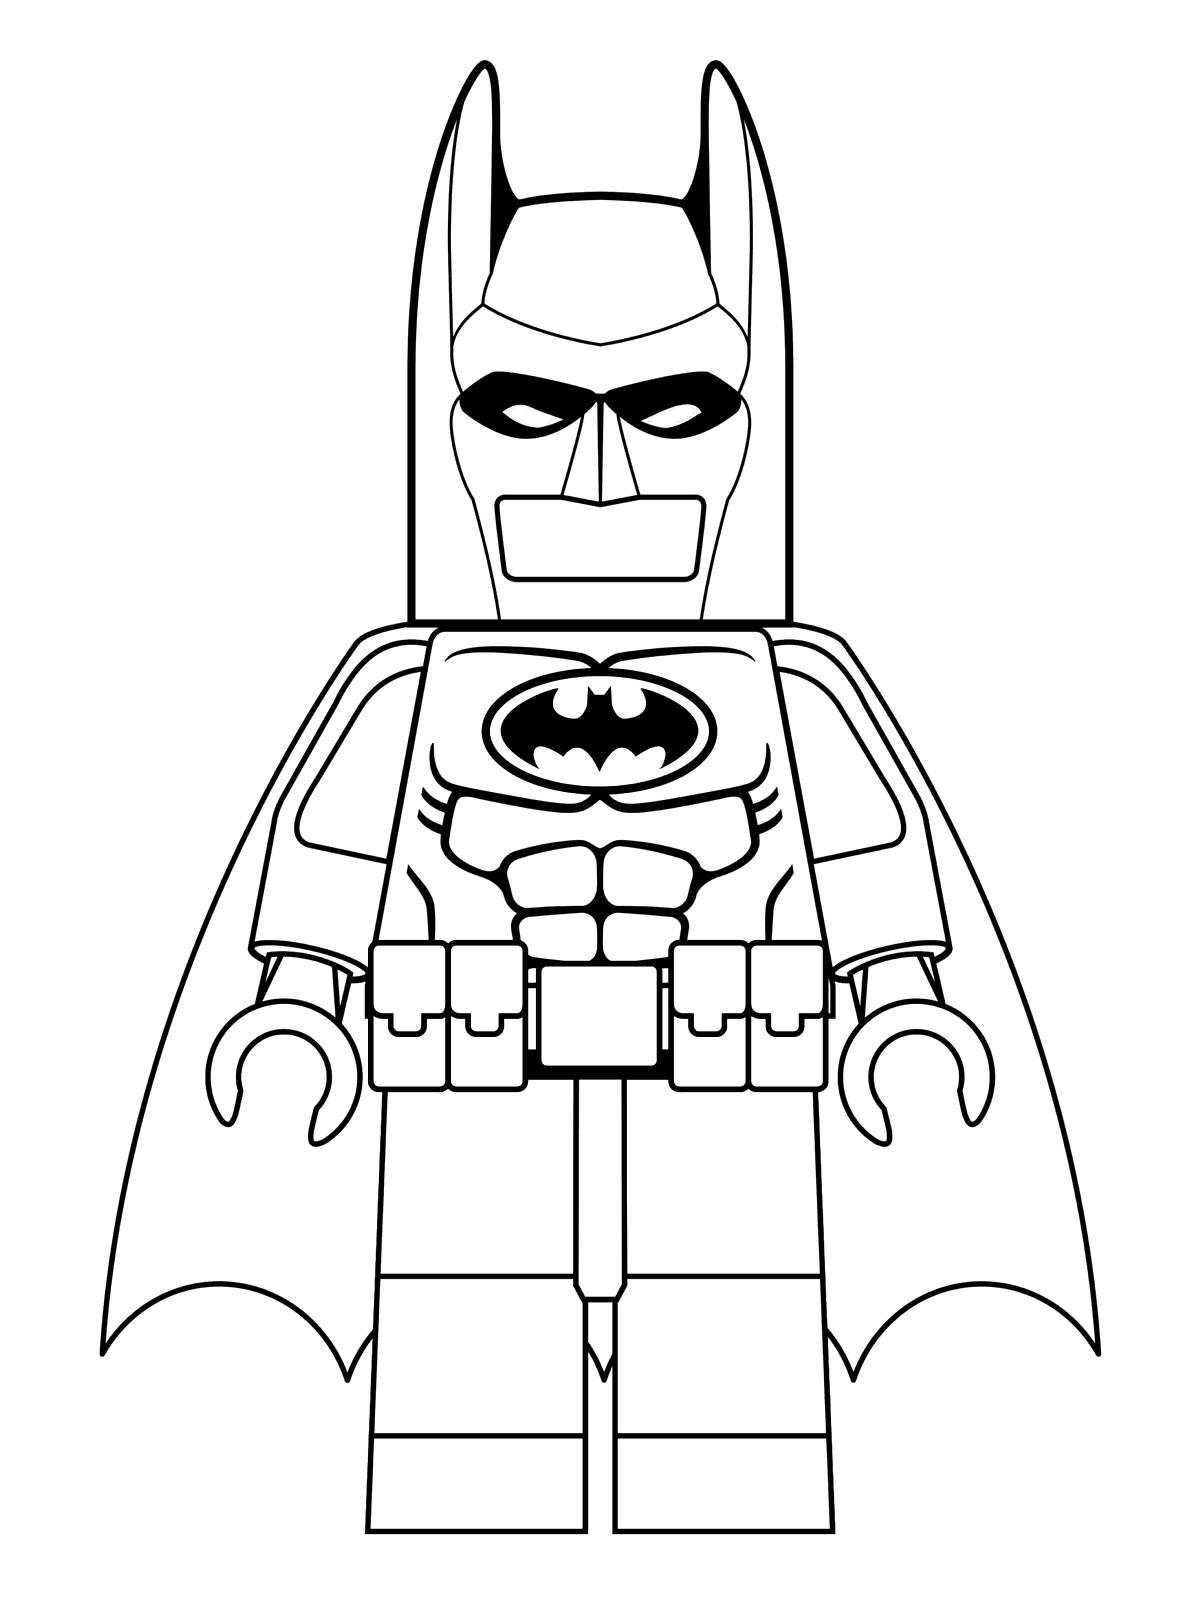 16 coloring pages of lego batman movie on kids n fun co uk on kids n fun you will always find the best coloring pages first